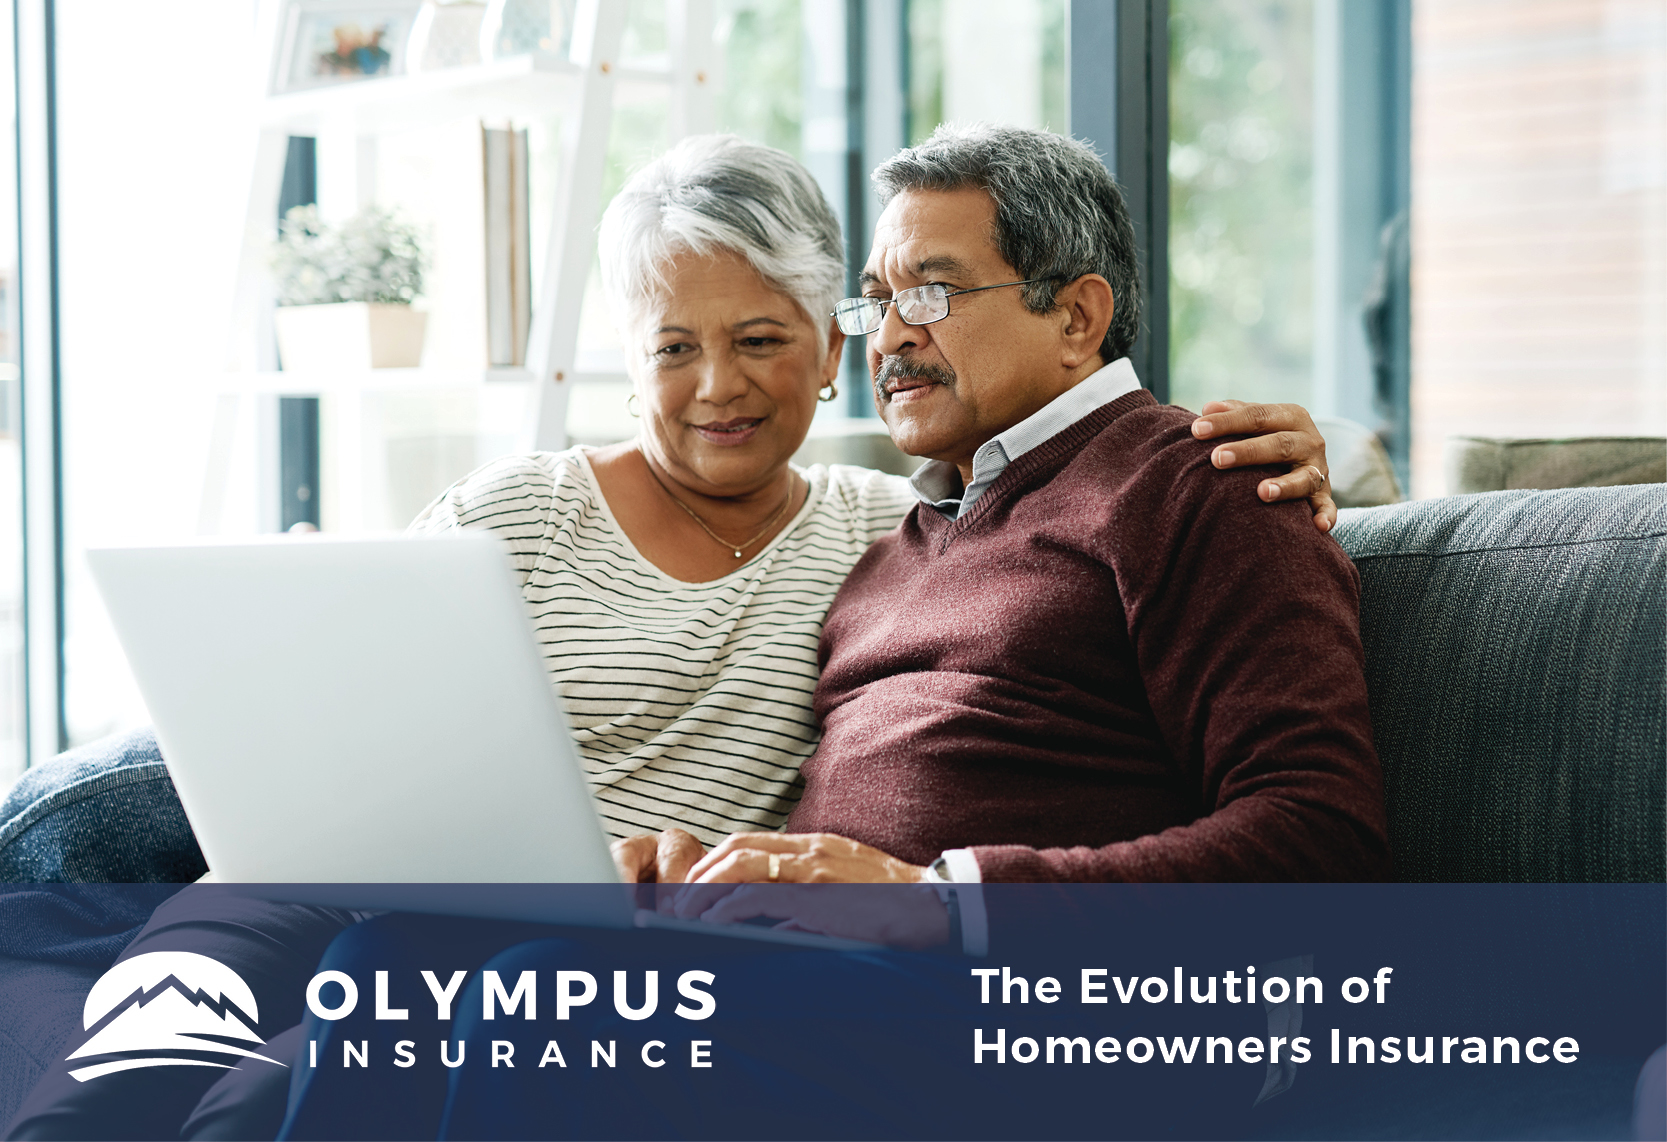 The Evolution of Homeowners Insurance